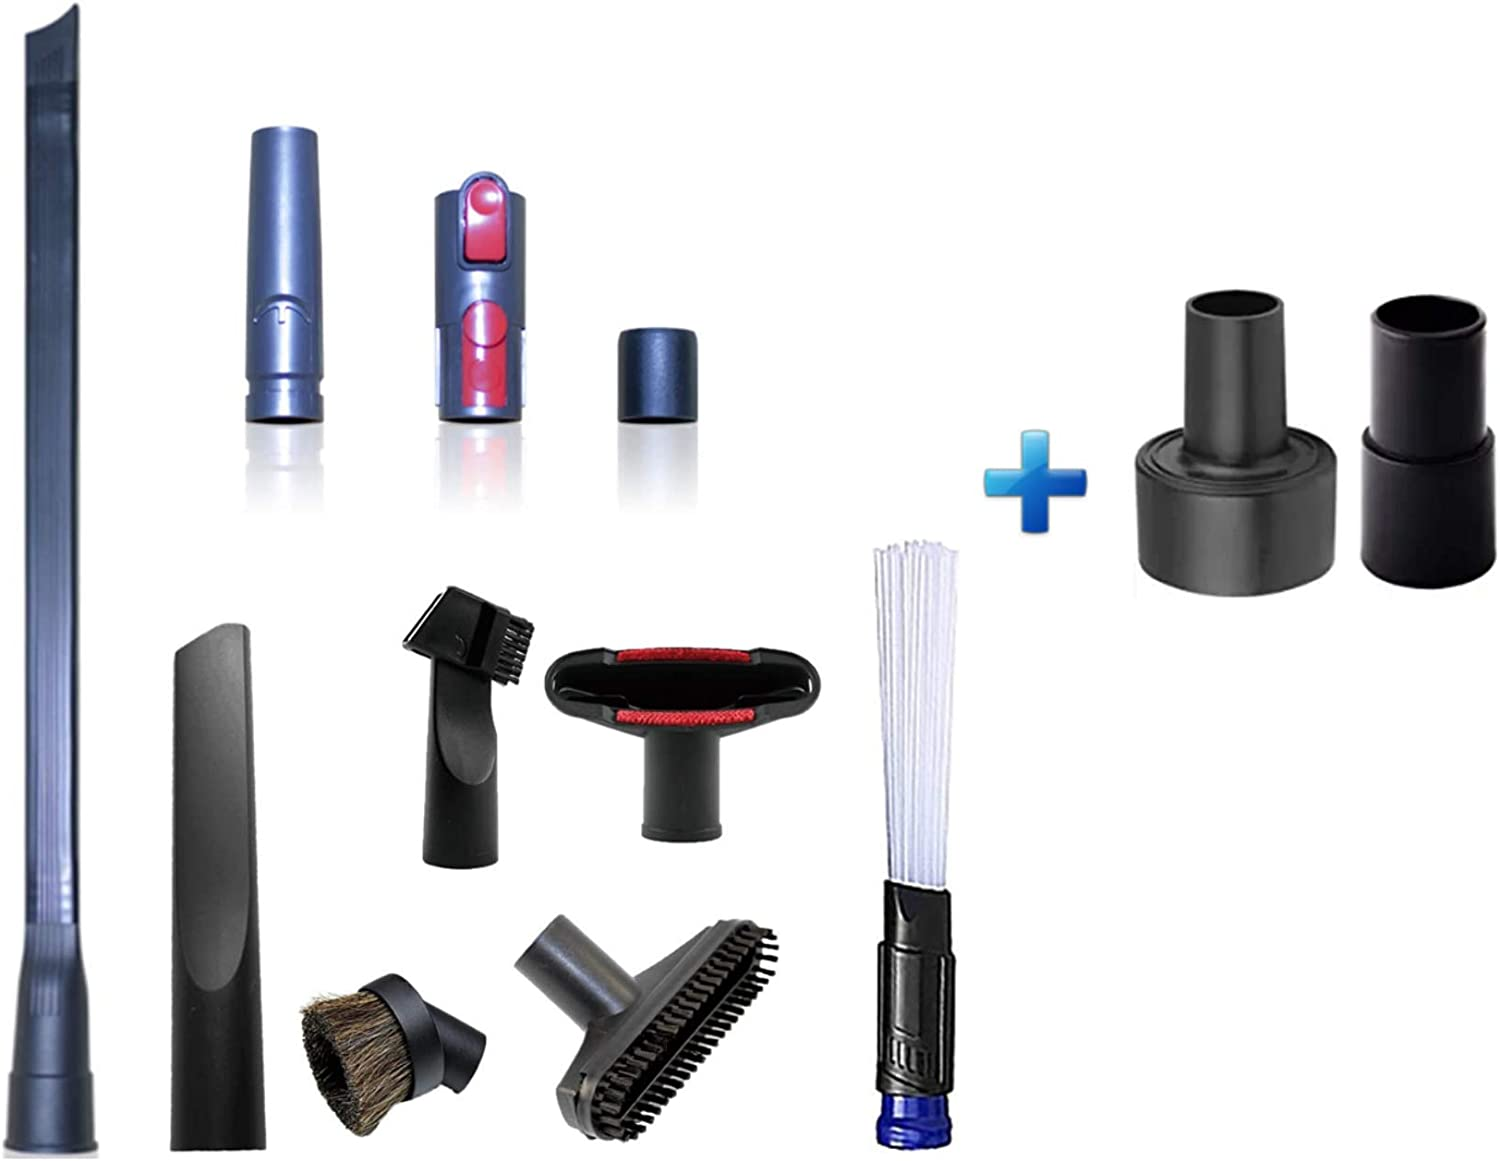 Household Cleaning Kit Attachments Vacuum Cleaner Accessories Universal Vacuum Hose Adapters Flexible Crevice Tool for Dryer Lint Vent Trap Cleaner